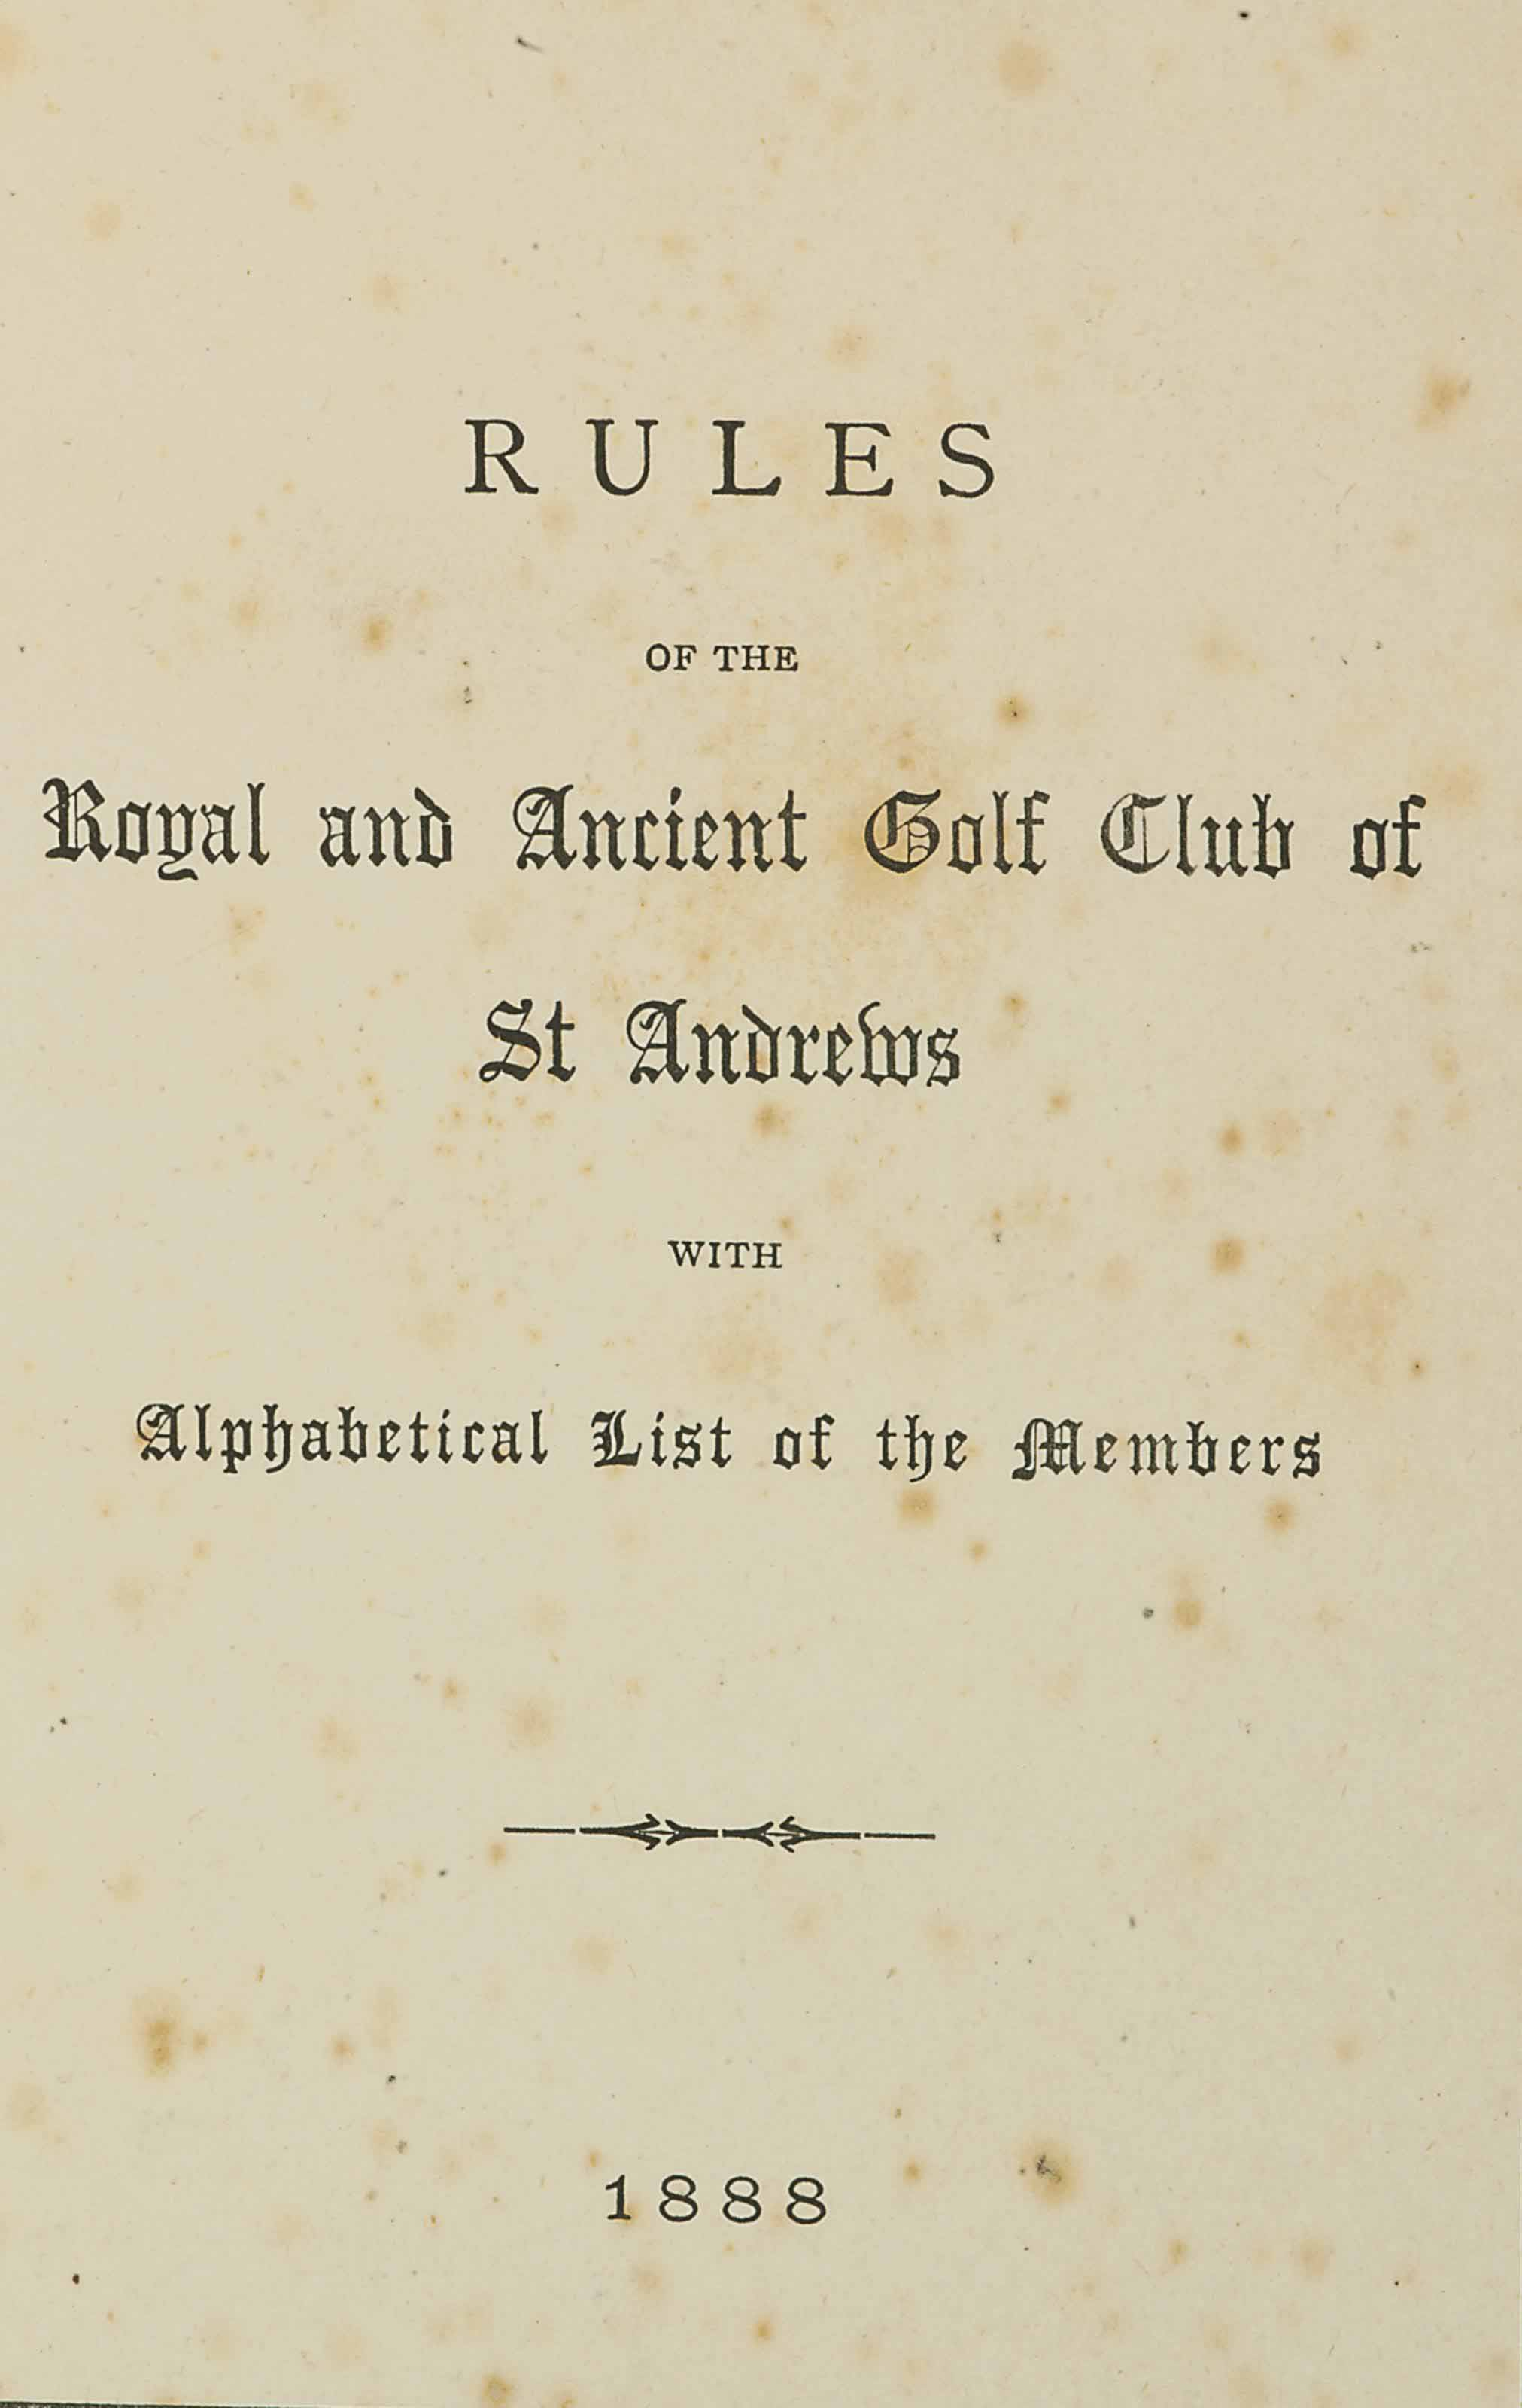 ROYAL AND ANCIENT -- RULES OF THE ROYAL AND ANCIENT GOLF CLUB OF ST. ANDREWS, WITH ALPHABETICAL LIST OF THE MEMBERS. [NO IMPRINT]: 1888.